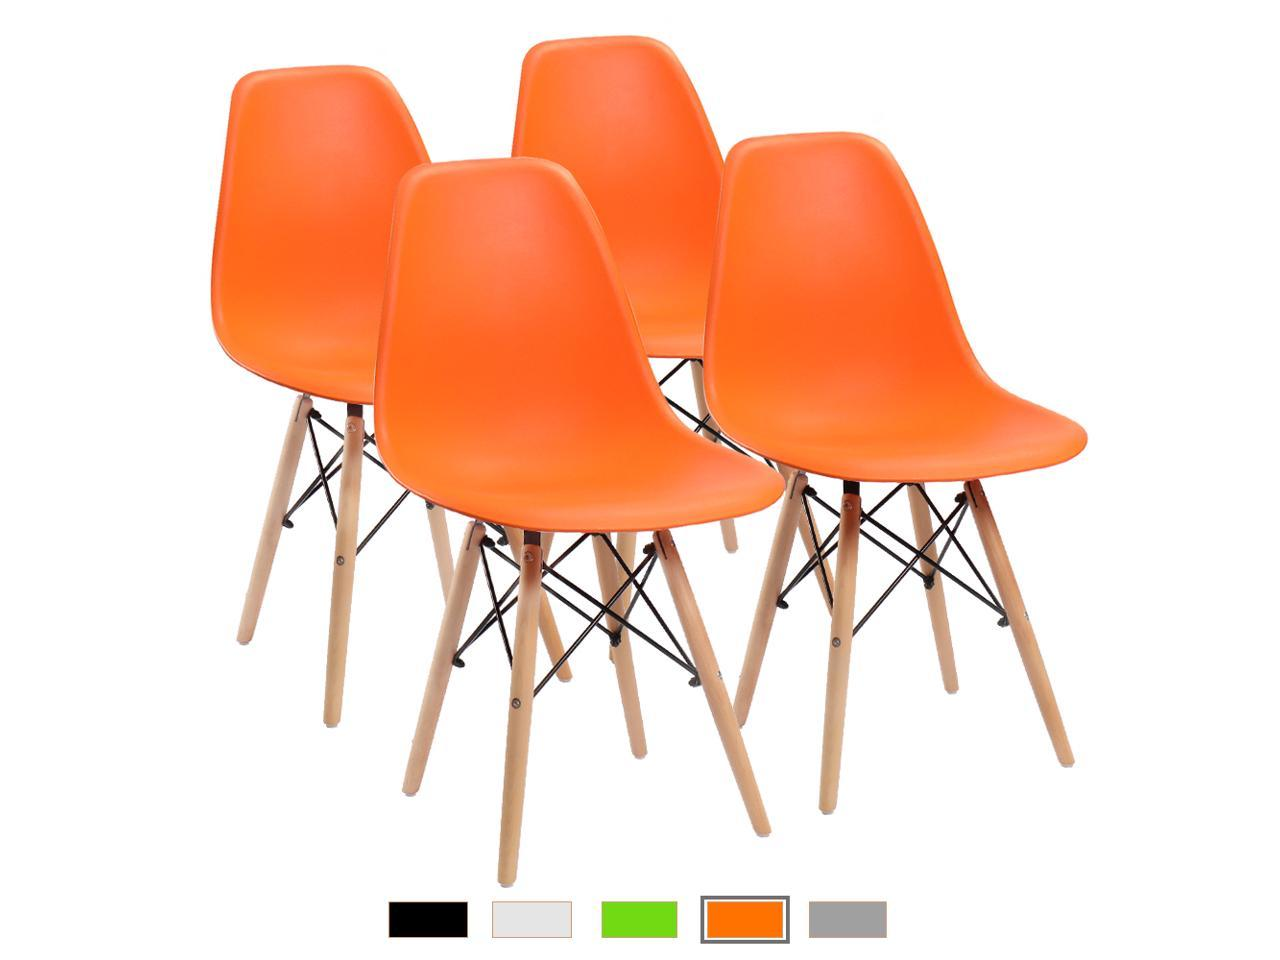 Furmax Pre Assembled Modern Style Dining Chair Pre Assembled Orange Effiel Modern Dsw Chair Shell Lounge Plastic Chair For Kitchen Dining Bedroom Living Room Side Chairs Set Of 4 Newegg Com